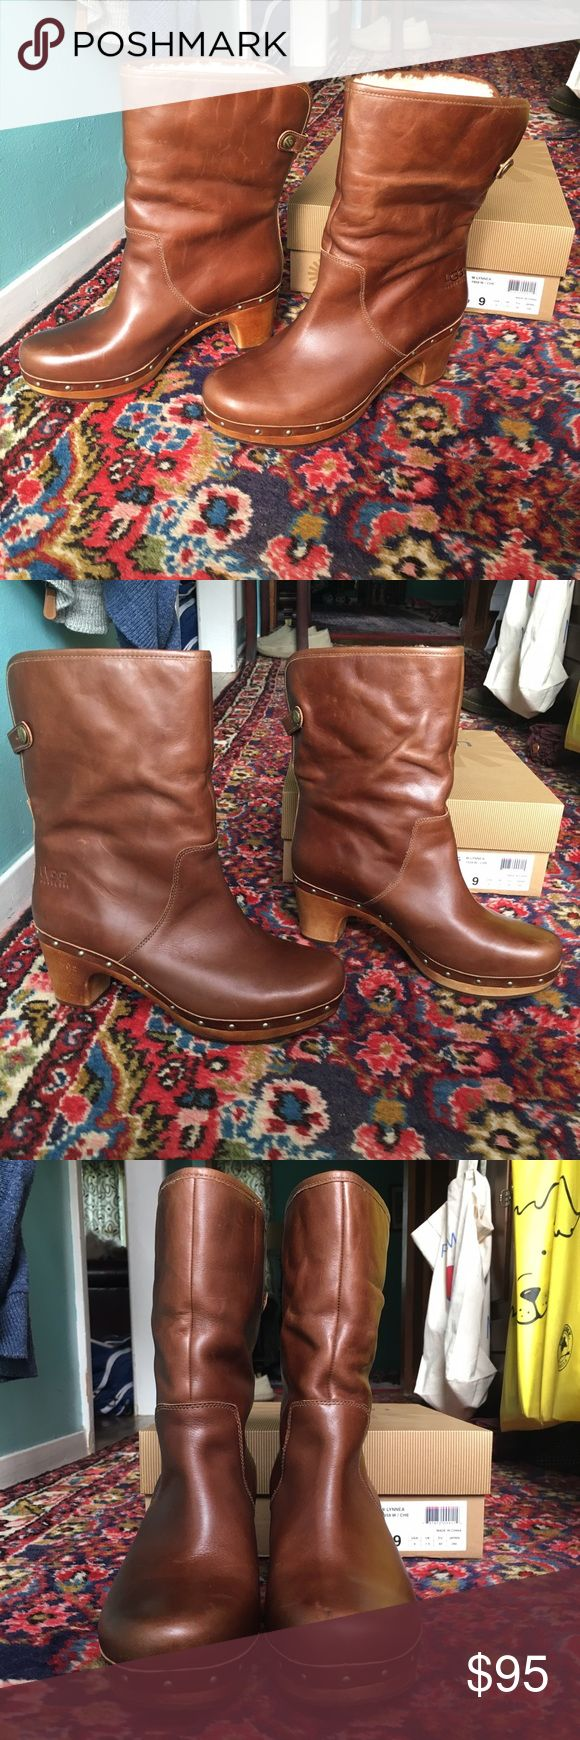 UGG Lynnea Brown Leather Clog Boots 9 Here we have a pair of brown leather Ugg Lynnea clog boots in a size 9. They were worn once or twice, and then stored away in a closet in their original box. They can be worn with the shaft up or folded down to reveal the cozy sheepy lining for a different look. Check out all of my pictures, ask any questions you may have, and make me an offer! 👍🏻 UGG Shoes Heeled Boots